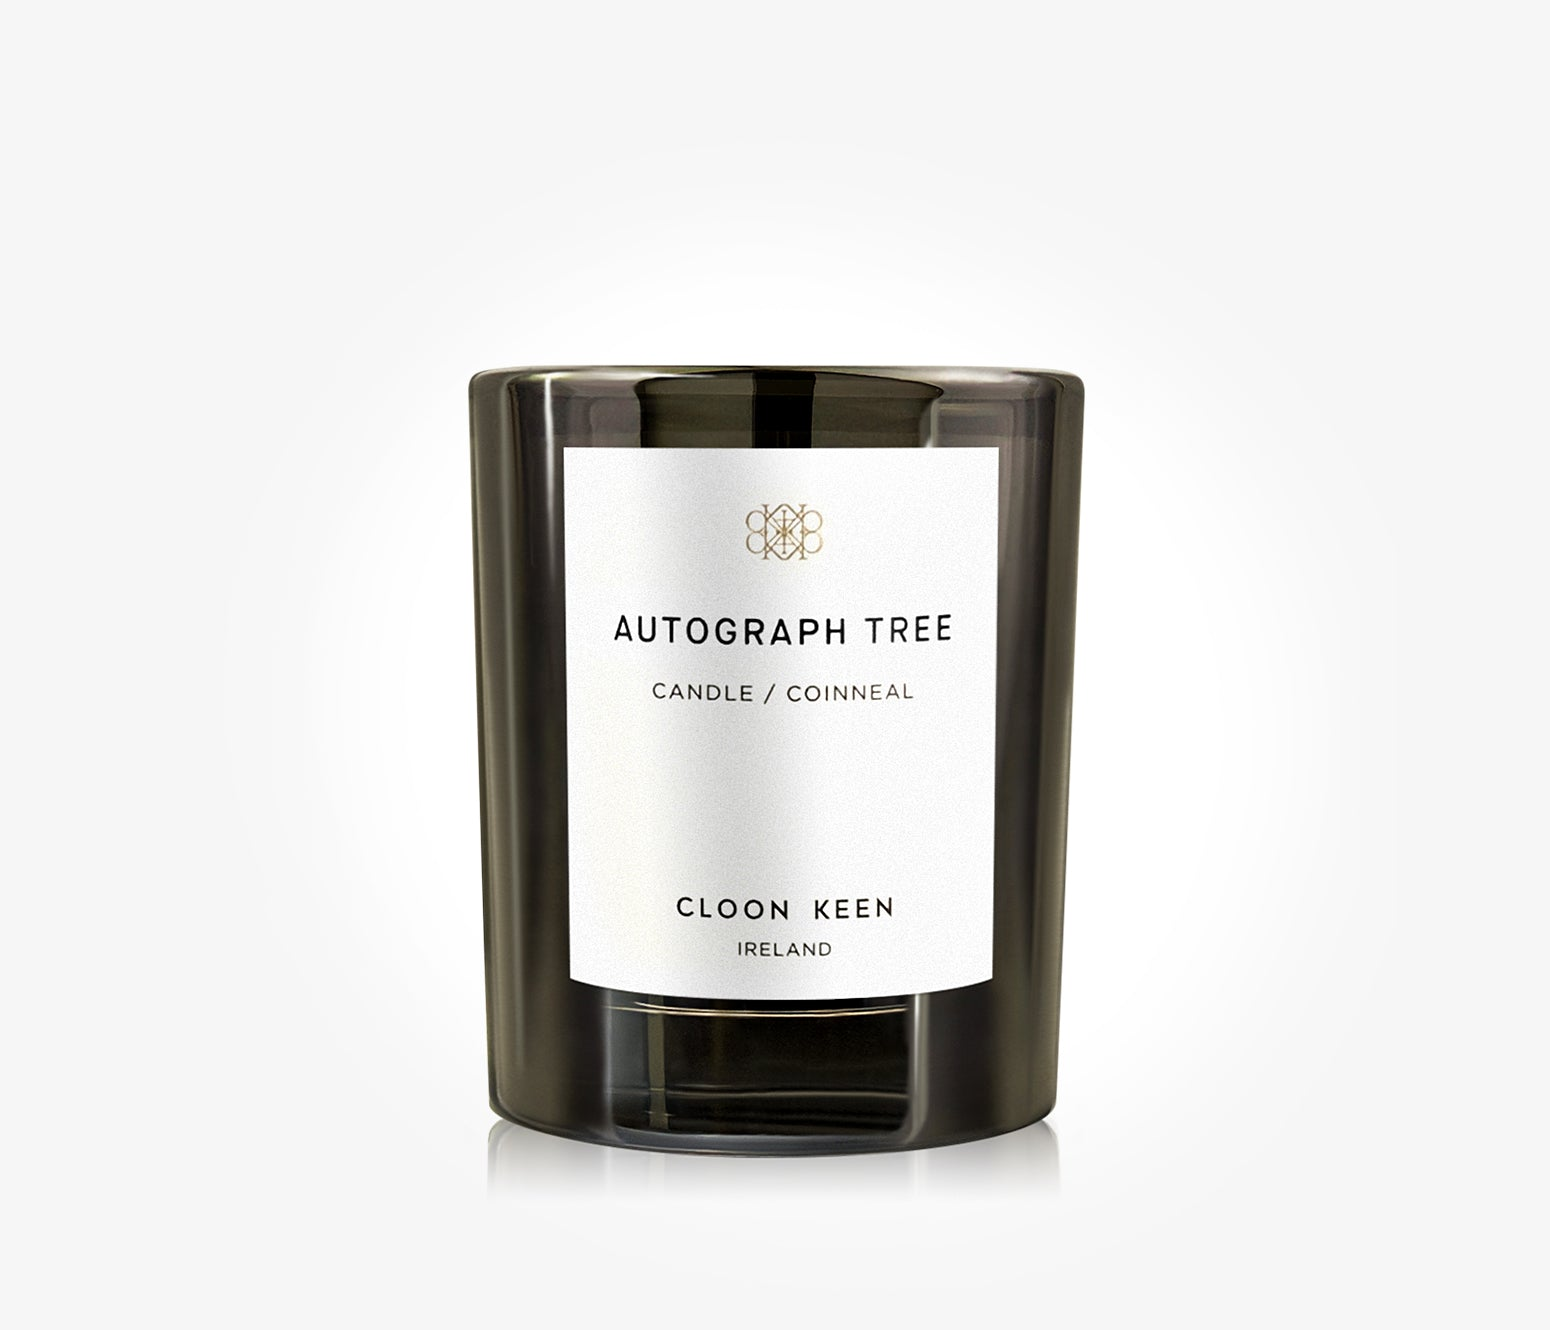 Autograph Tree Candle